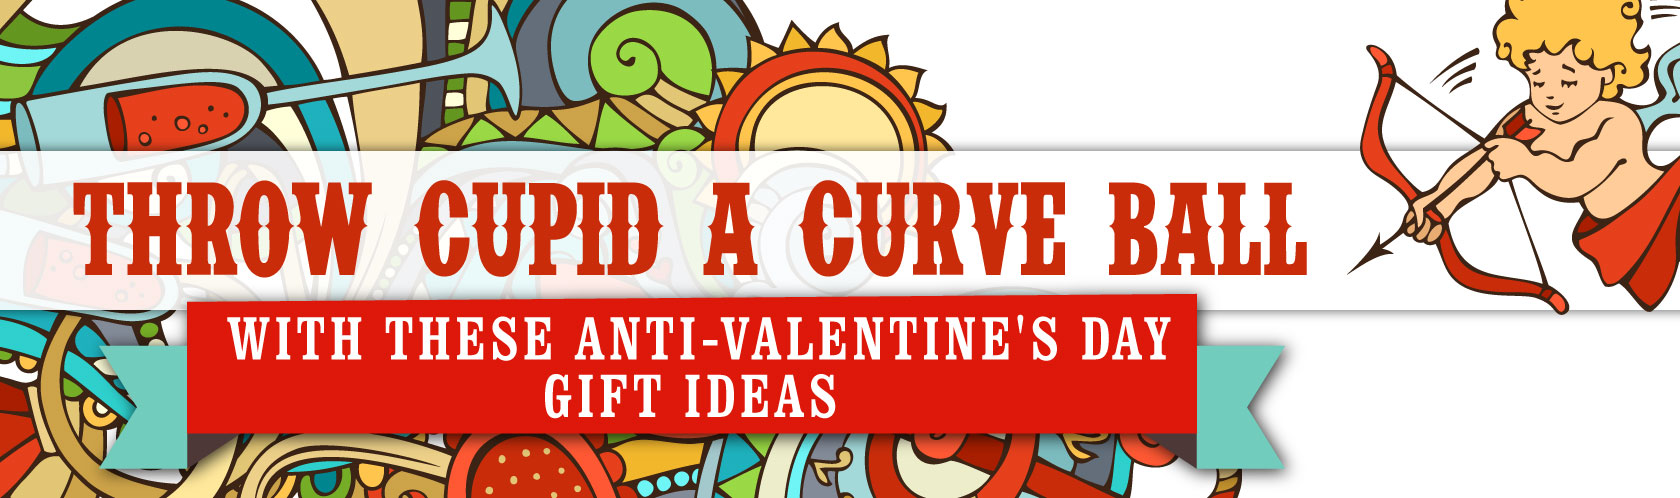 Throw Cupid a Curve Ball with These Anti-Valentine's Day Gift Ideas